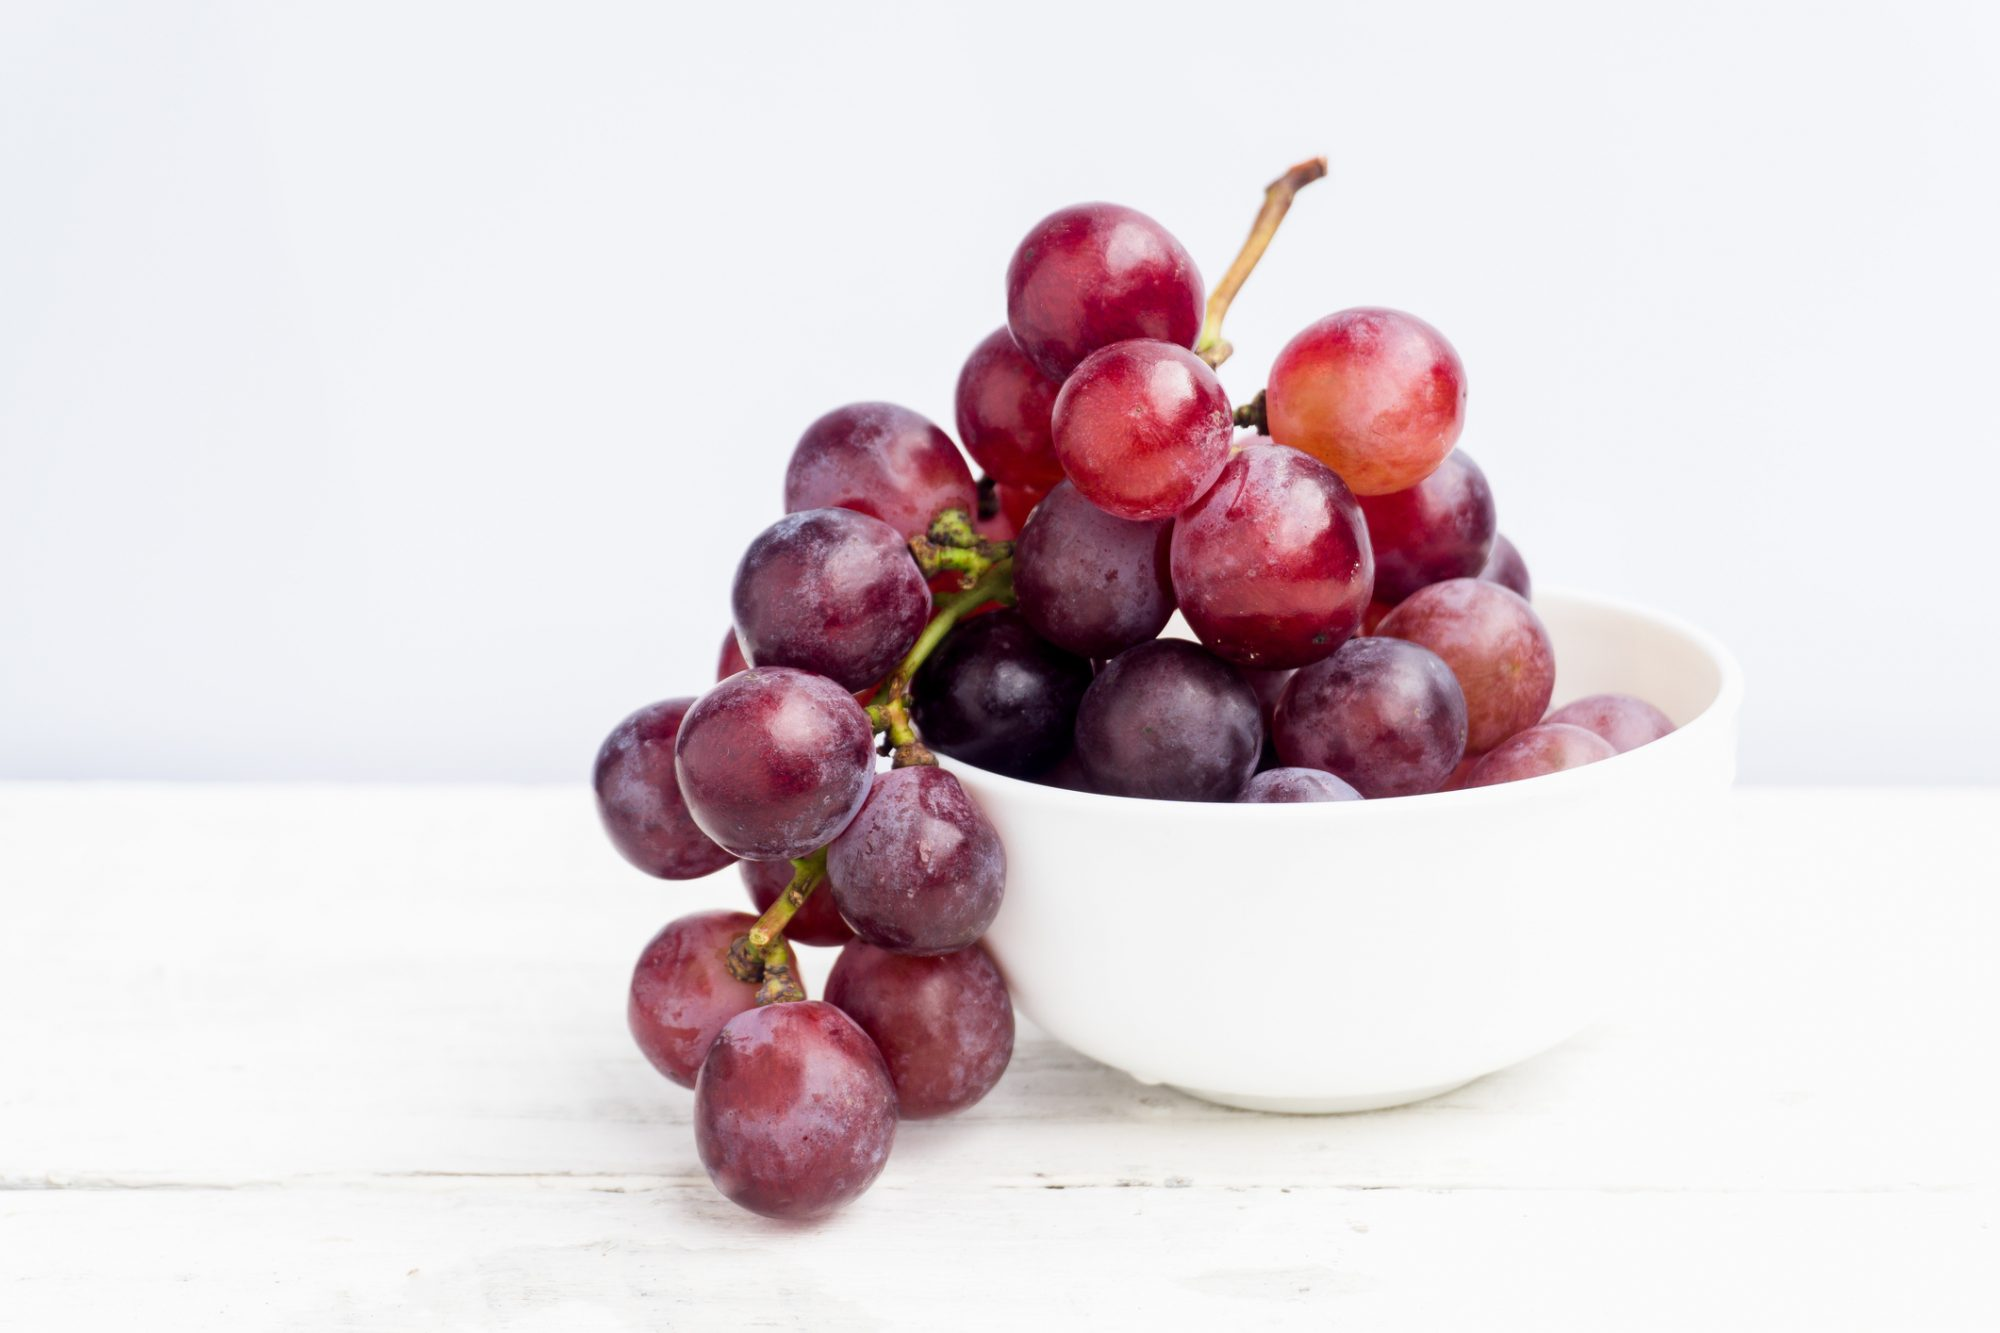 Grapes by Getty